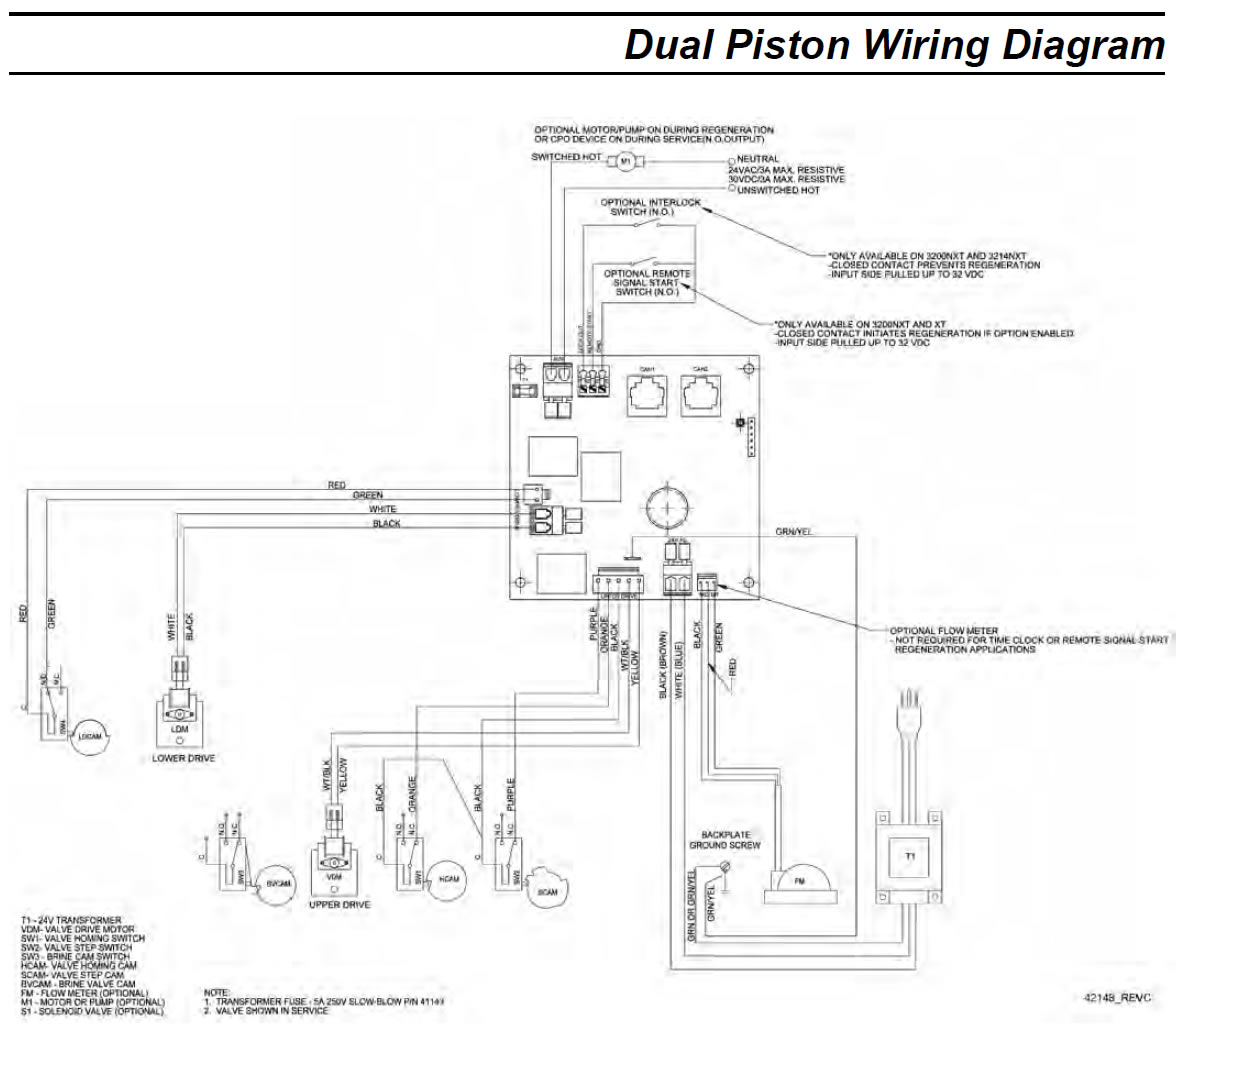 dual wiring fleck 9000 water softener control valve hydromatic pump wiring diagram at readyjetset.co